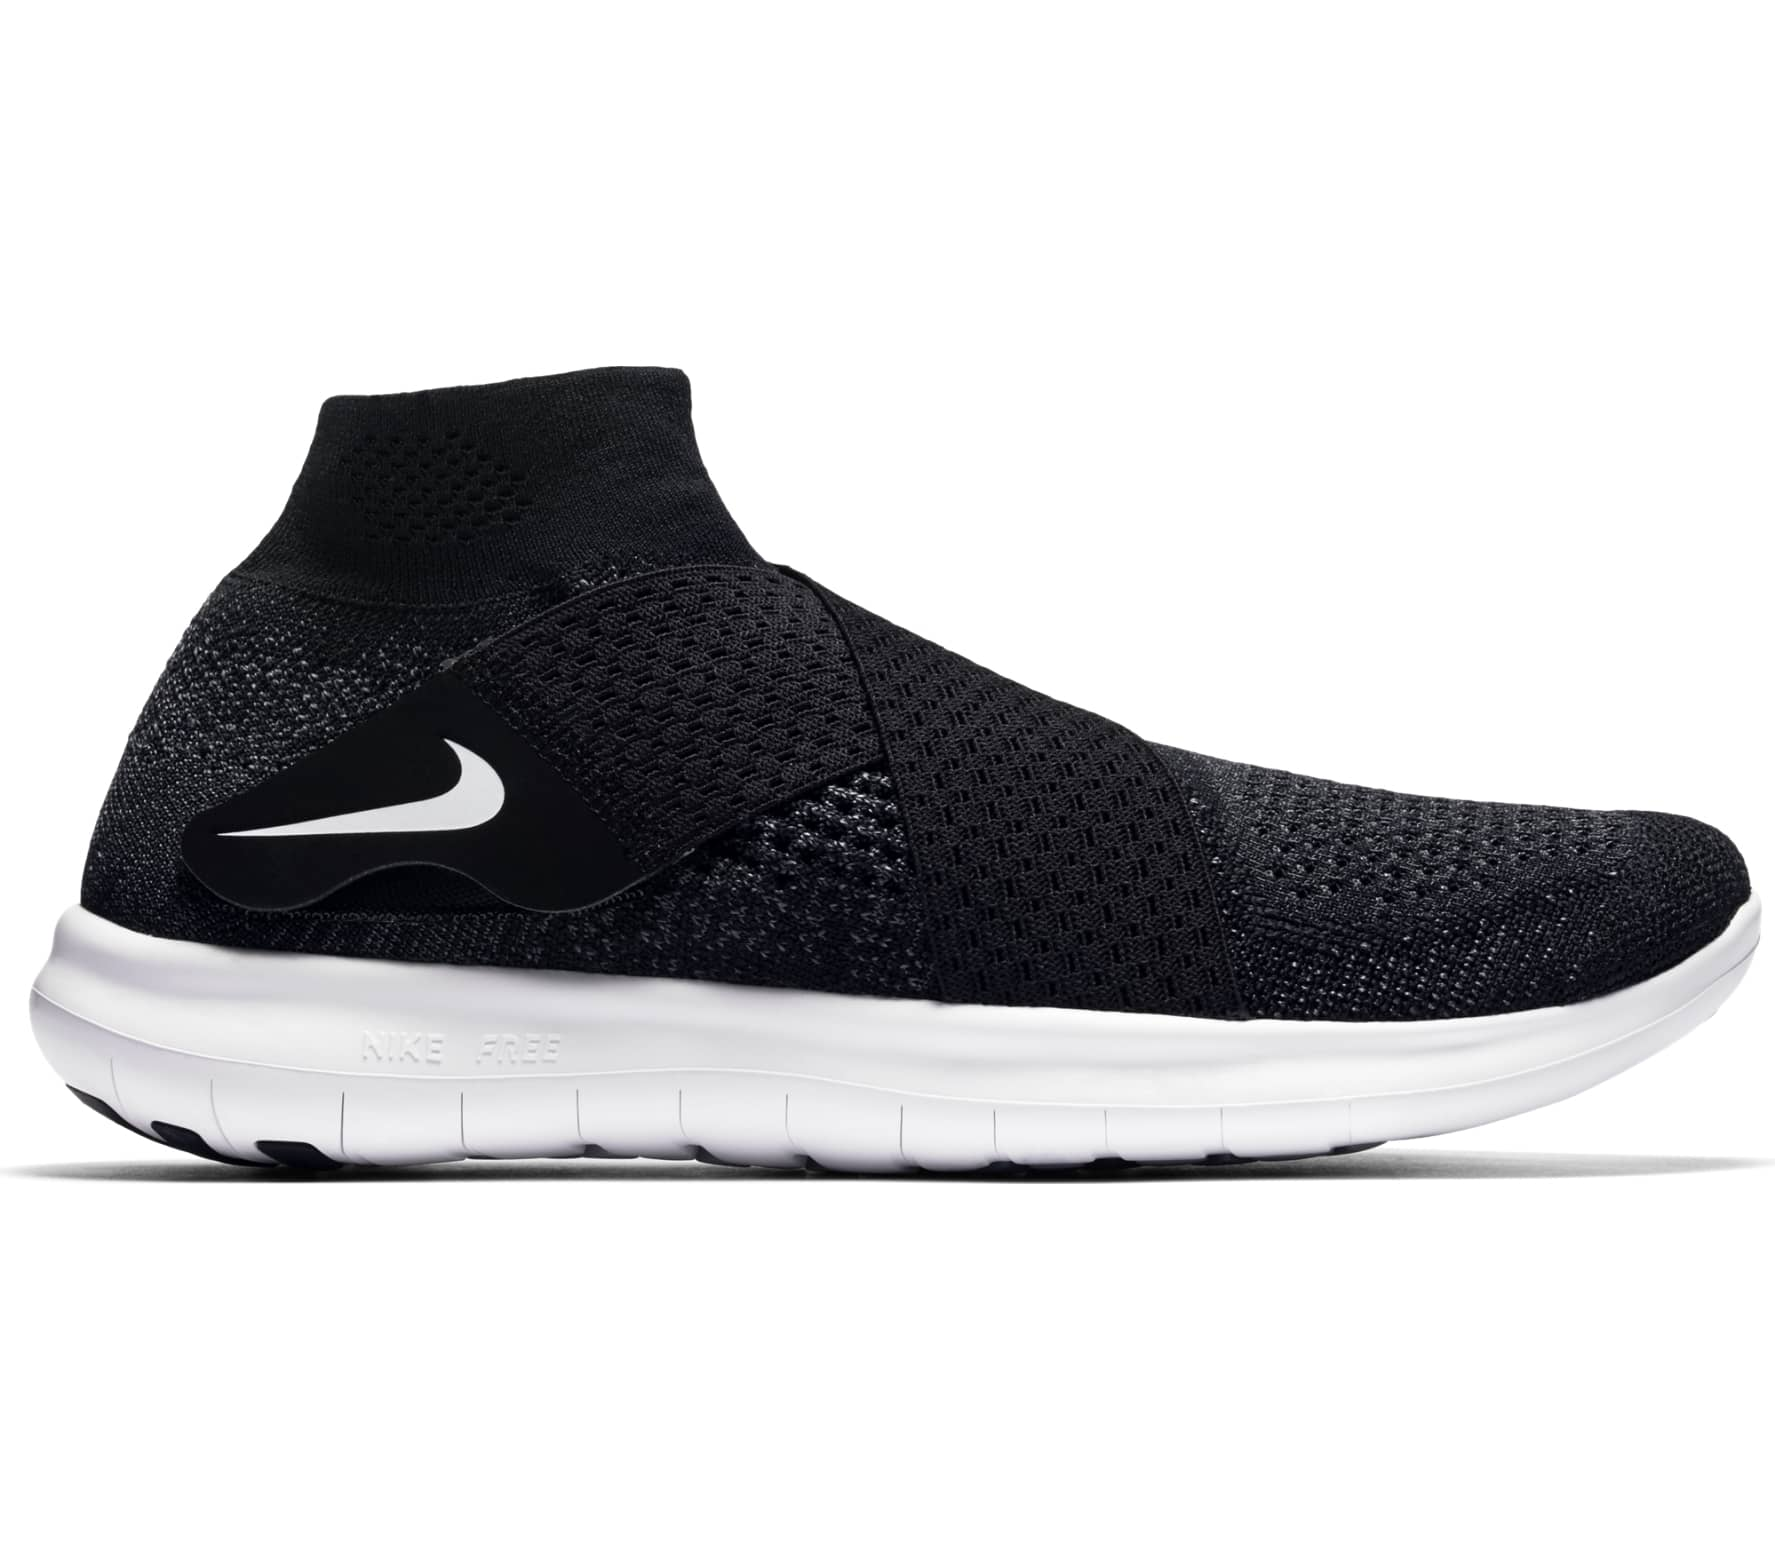 899e791f9f7e8 Nike - Free RN Motion Flyknit 2017 women s running shoes (black white)